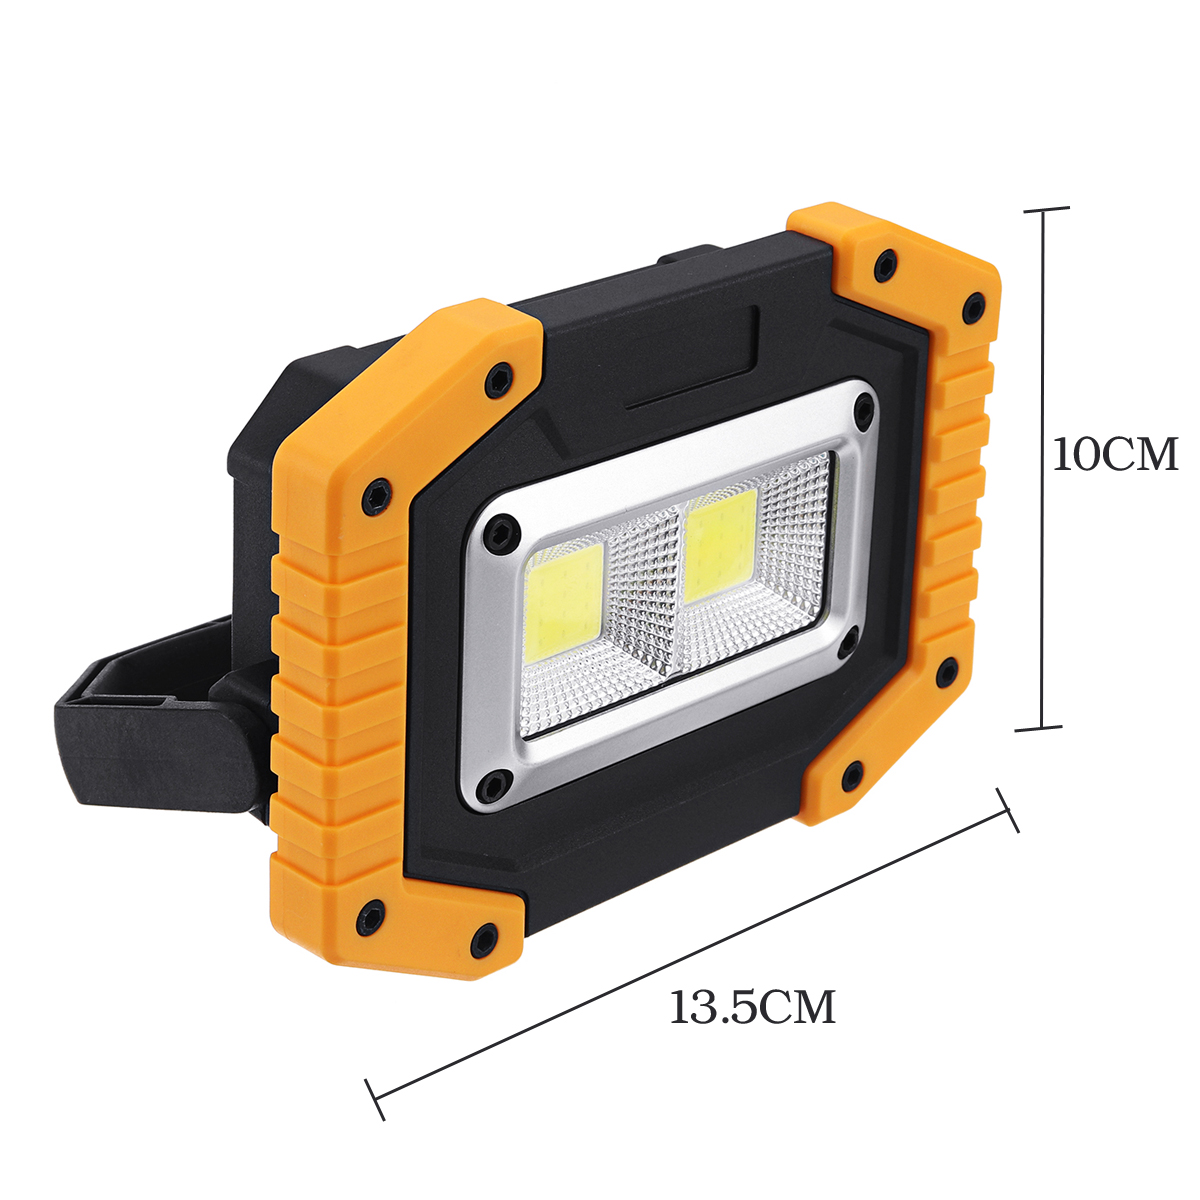 Xmund 30W USB LED COB Outdoor 3 Modes Work Light Camping Emergency Lantern Flashlight Spotlight Searchlight